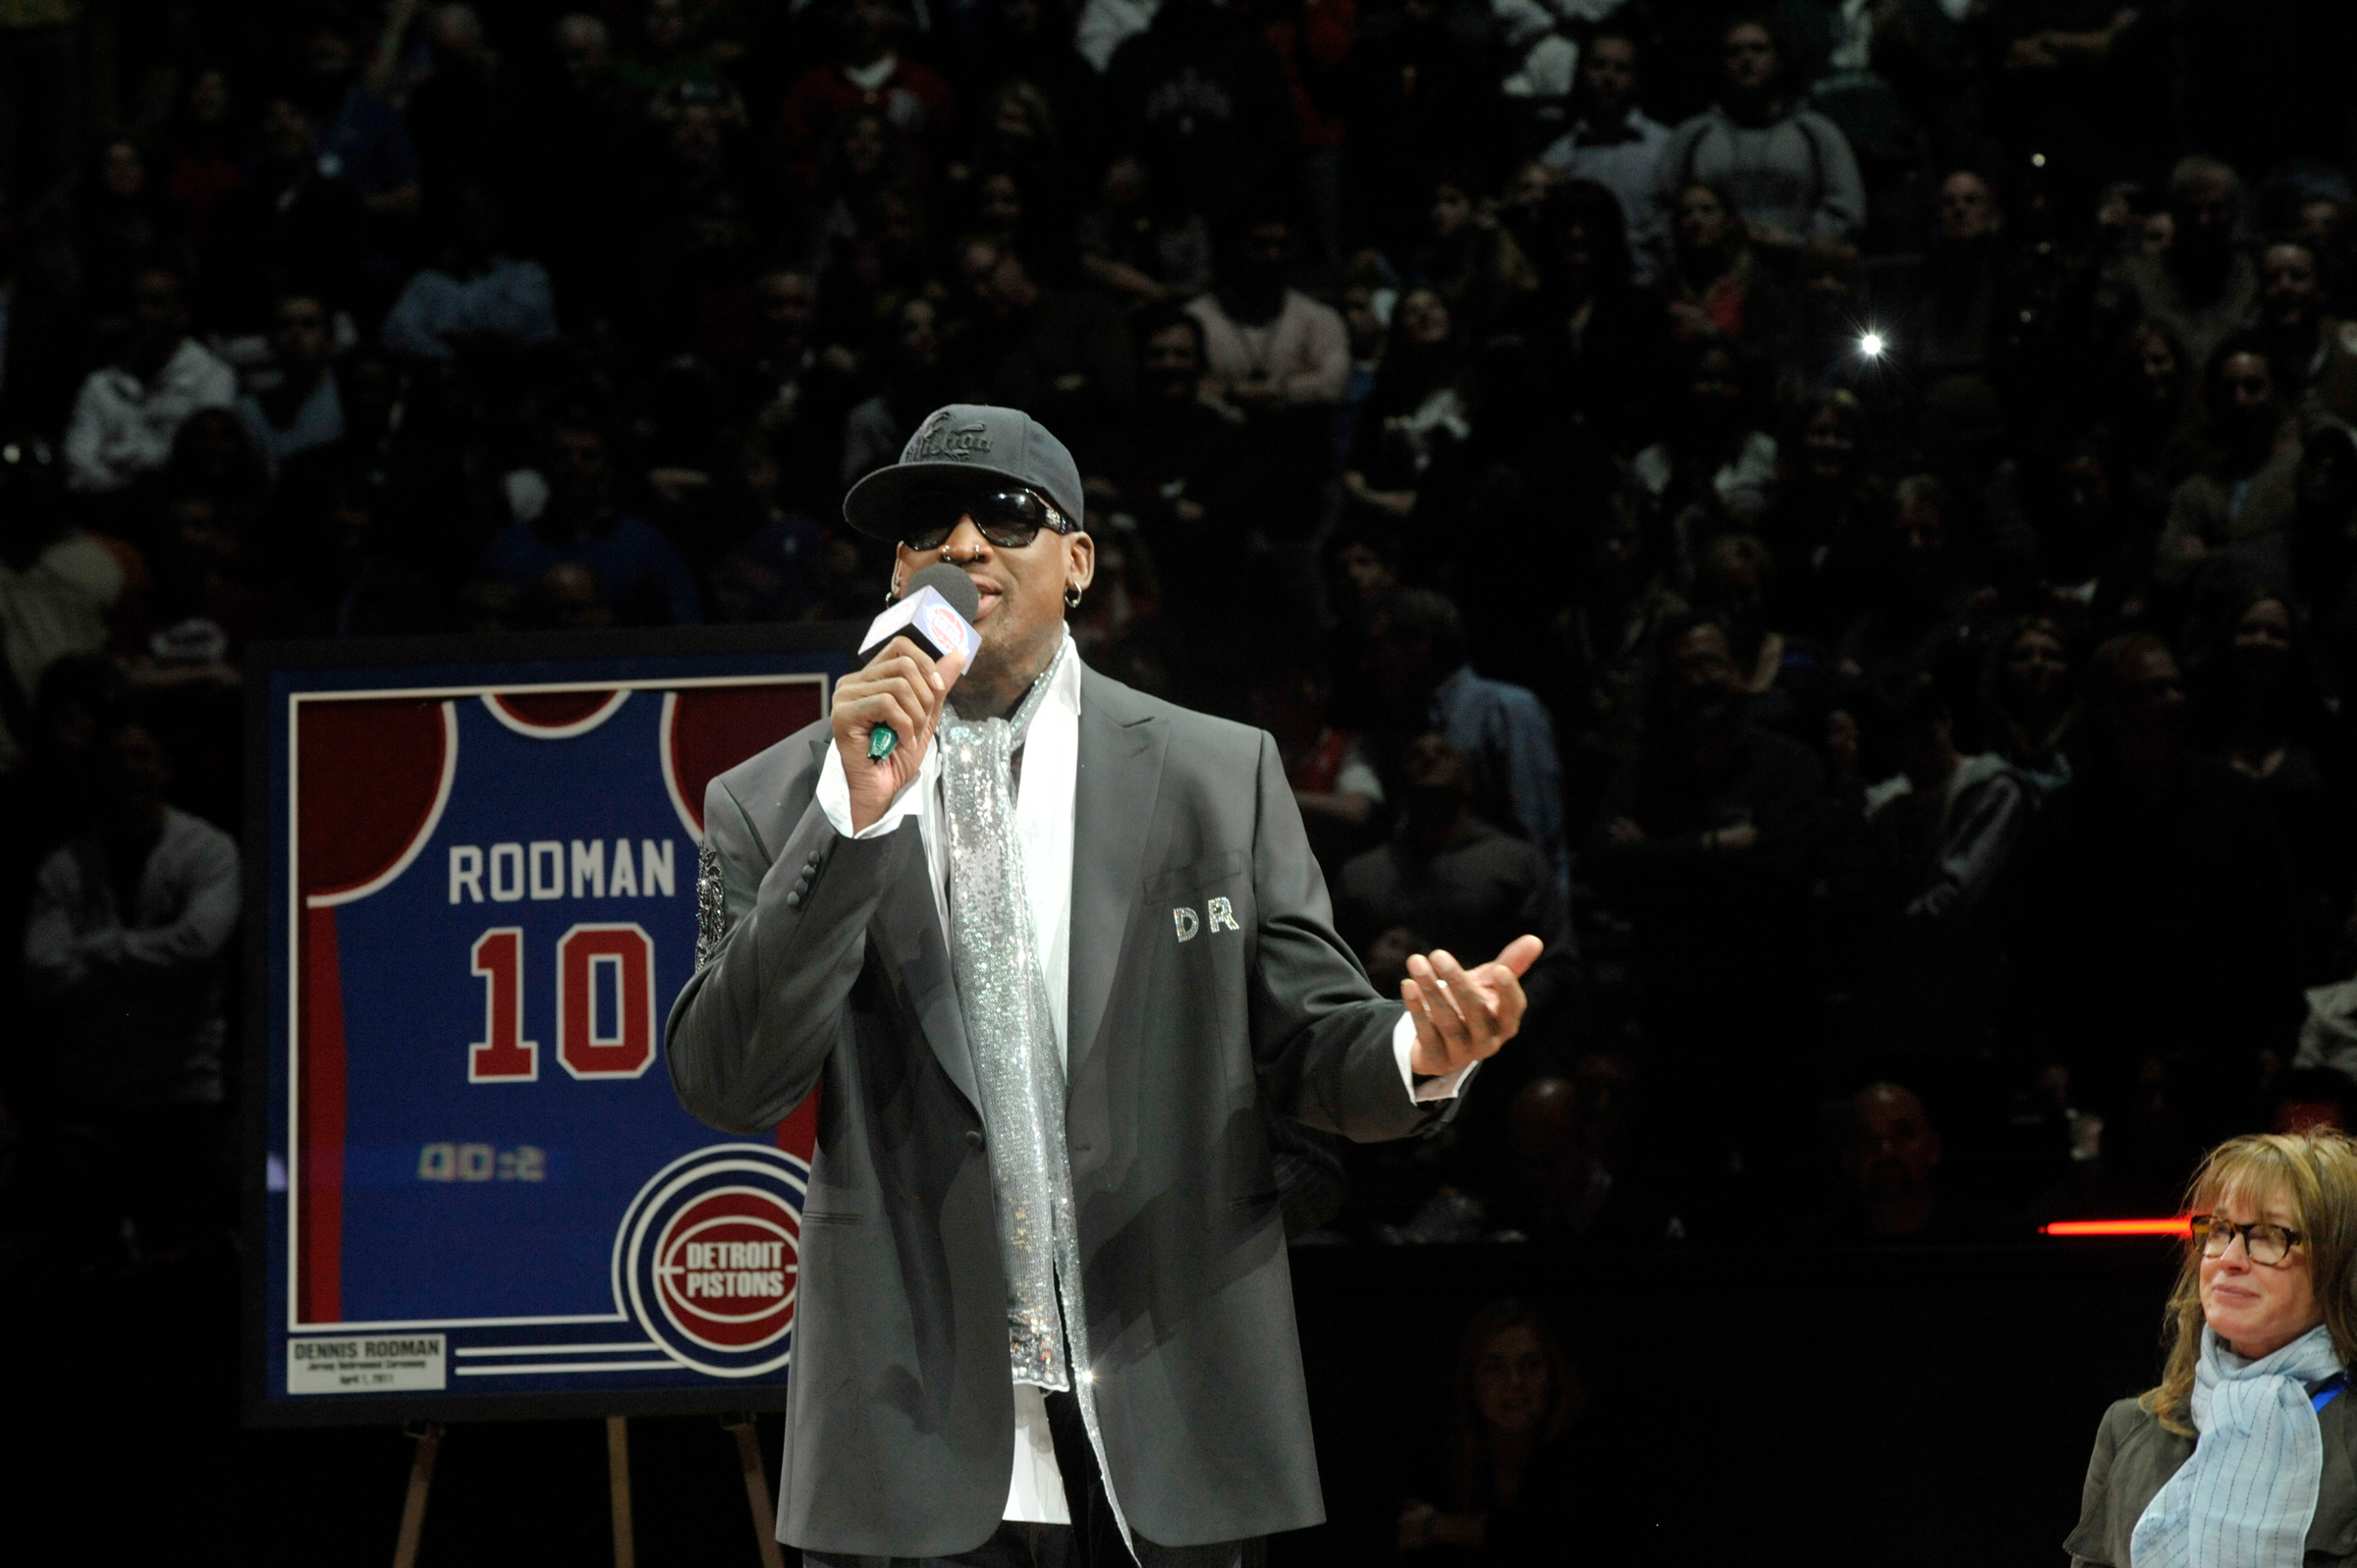 Dennis Rodman delivers game ball at Grand Rapids Drive game.